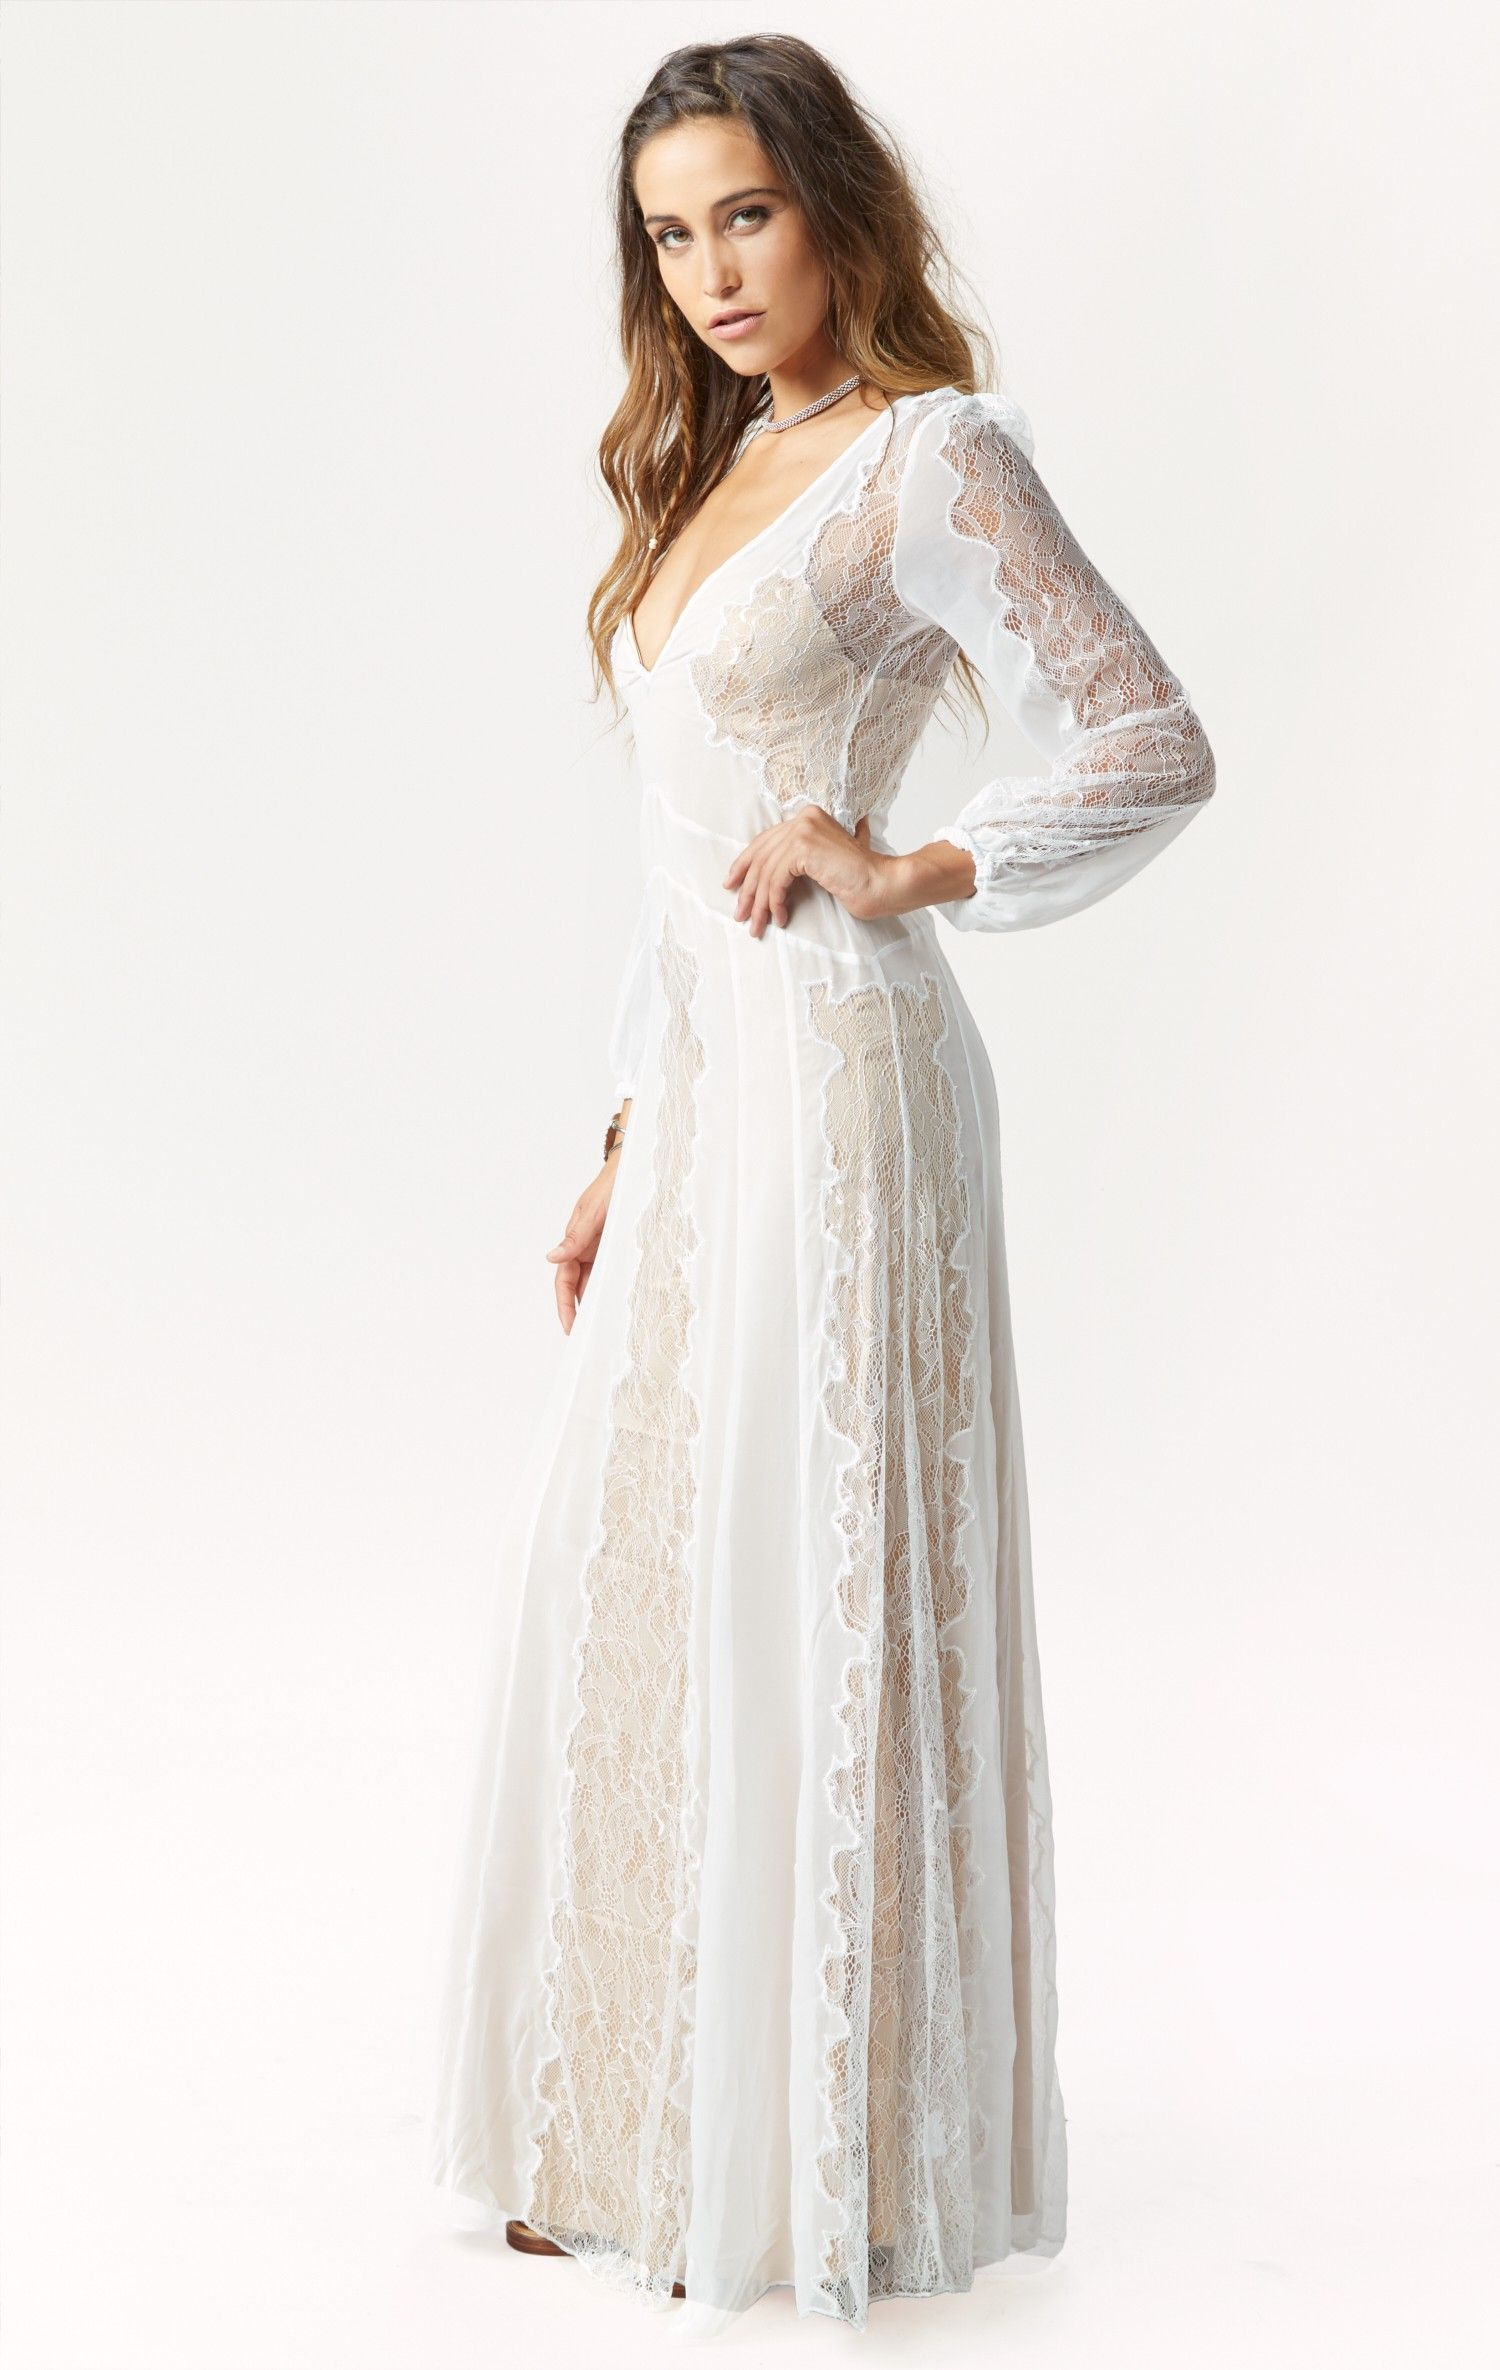 Vermont gown vermont stone cold fox and gowns vermont gown stone cold foxsimple ombrellifo Choice Image